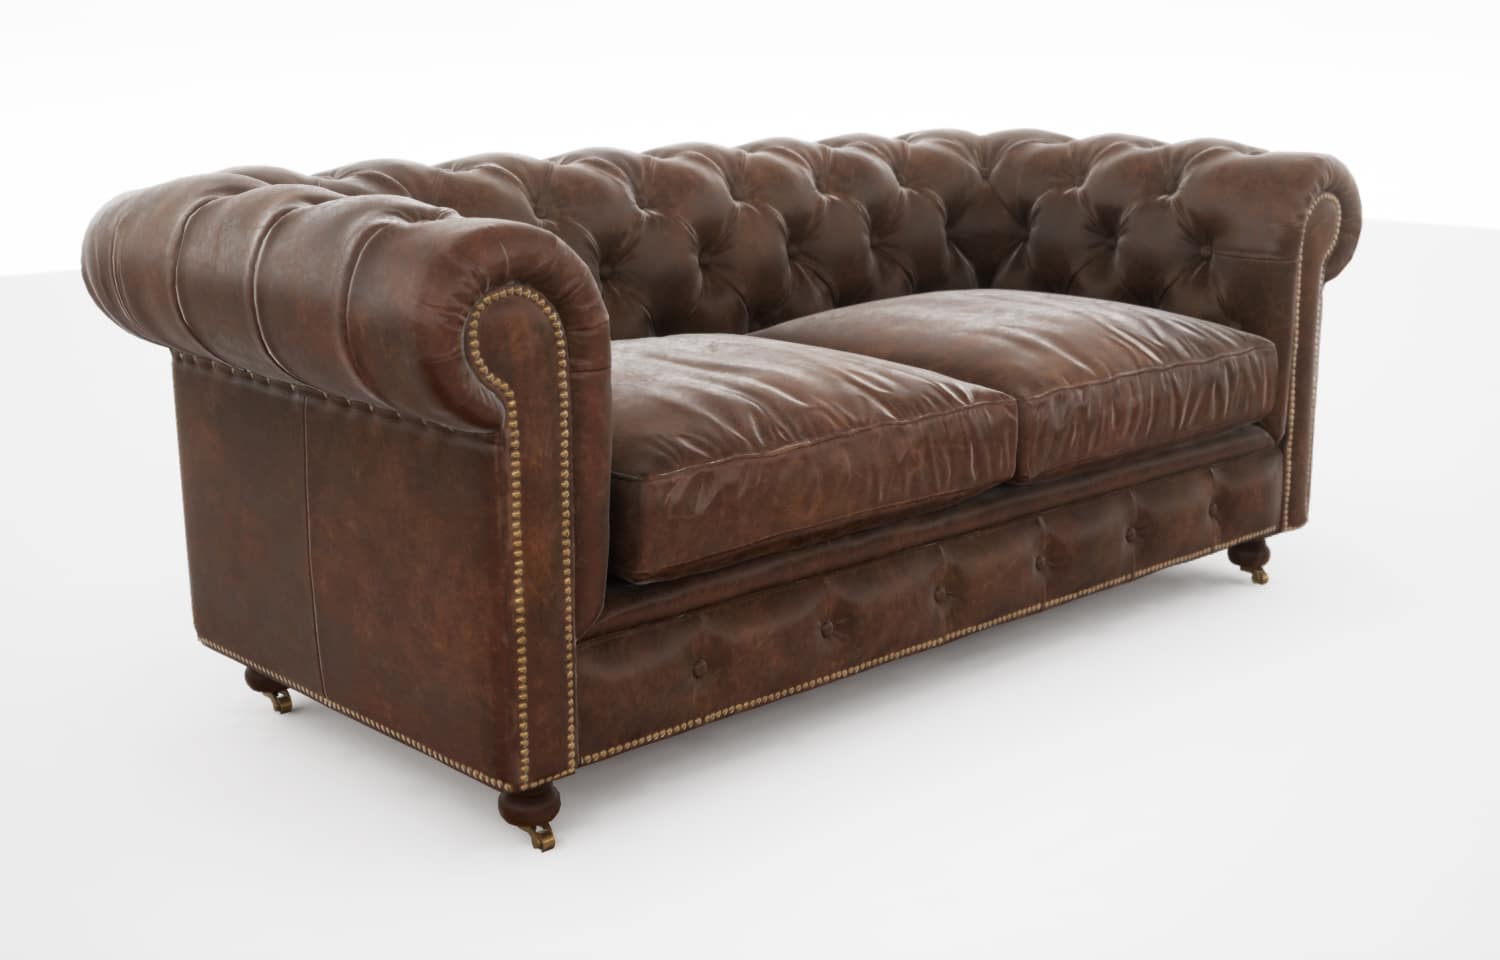 Chesterfield Sofa Texture Chesterfield Sofa Ue4arch